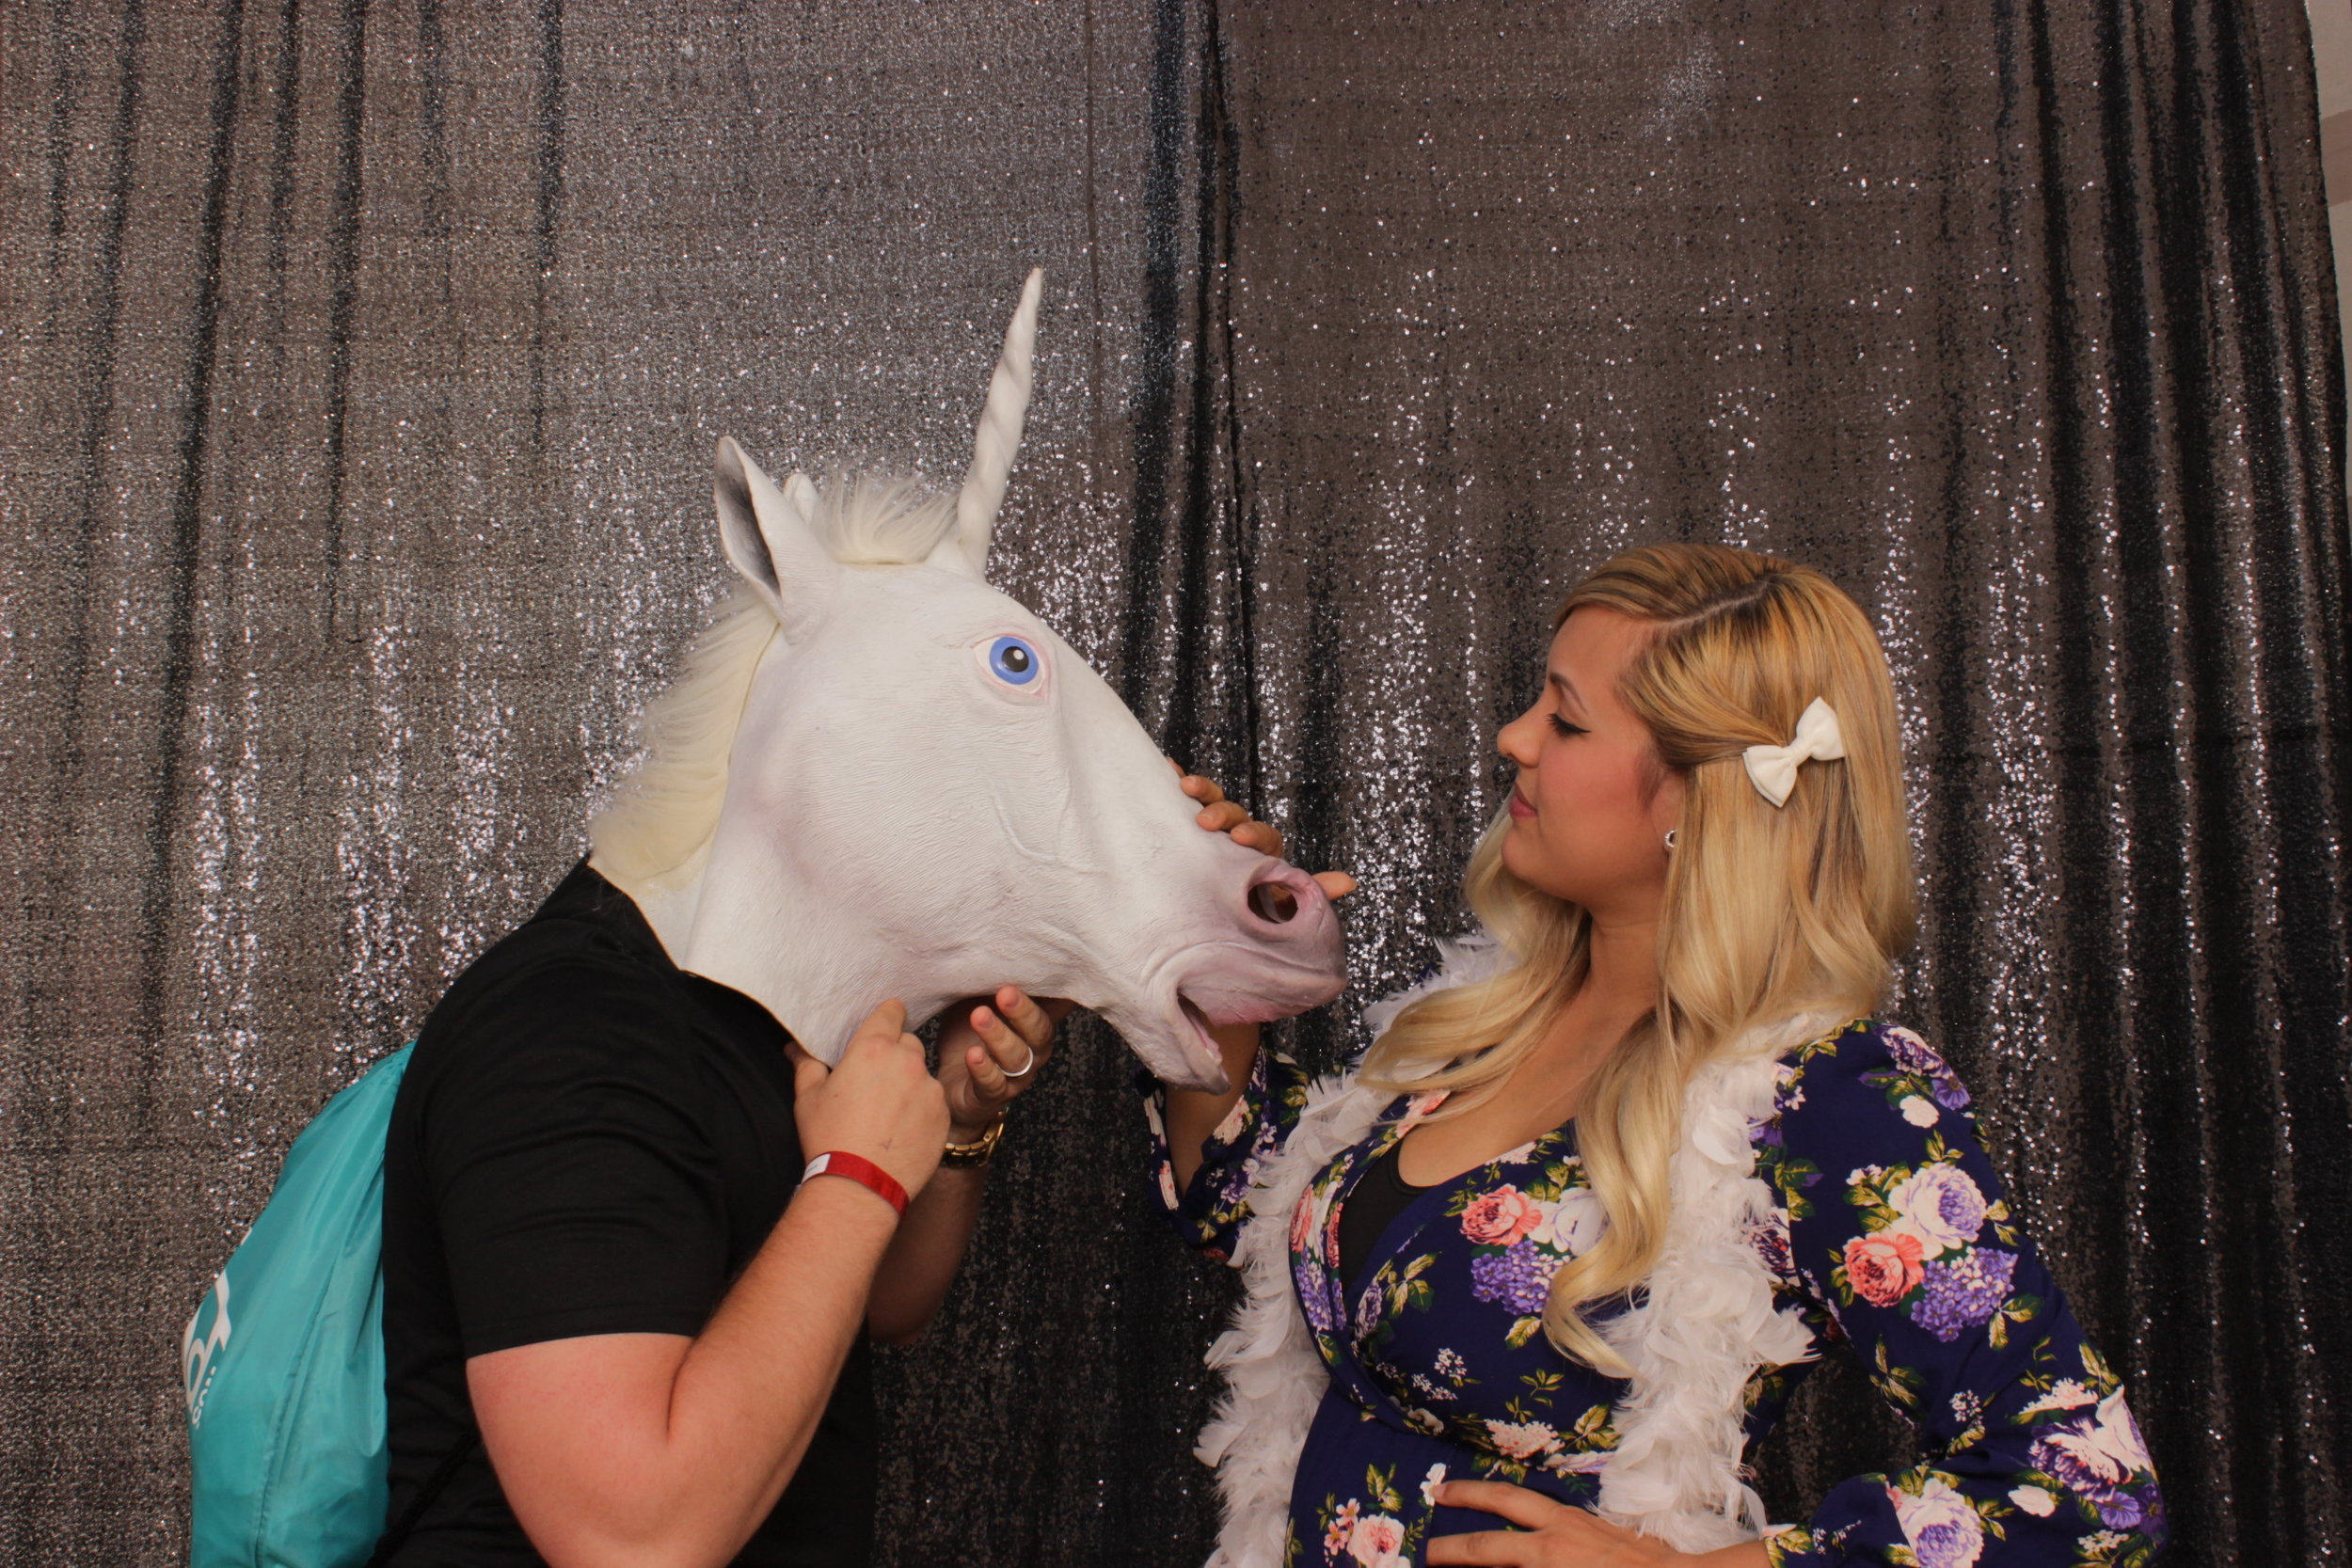 build-corporate-party-photo-booth-rental-unicorn-mask